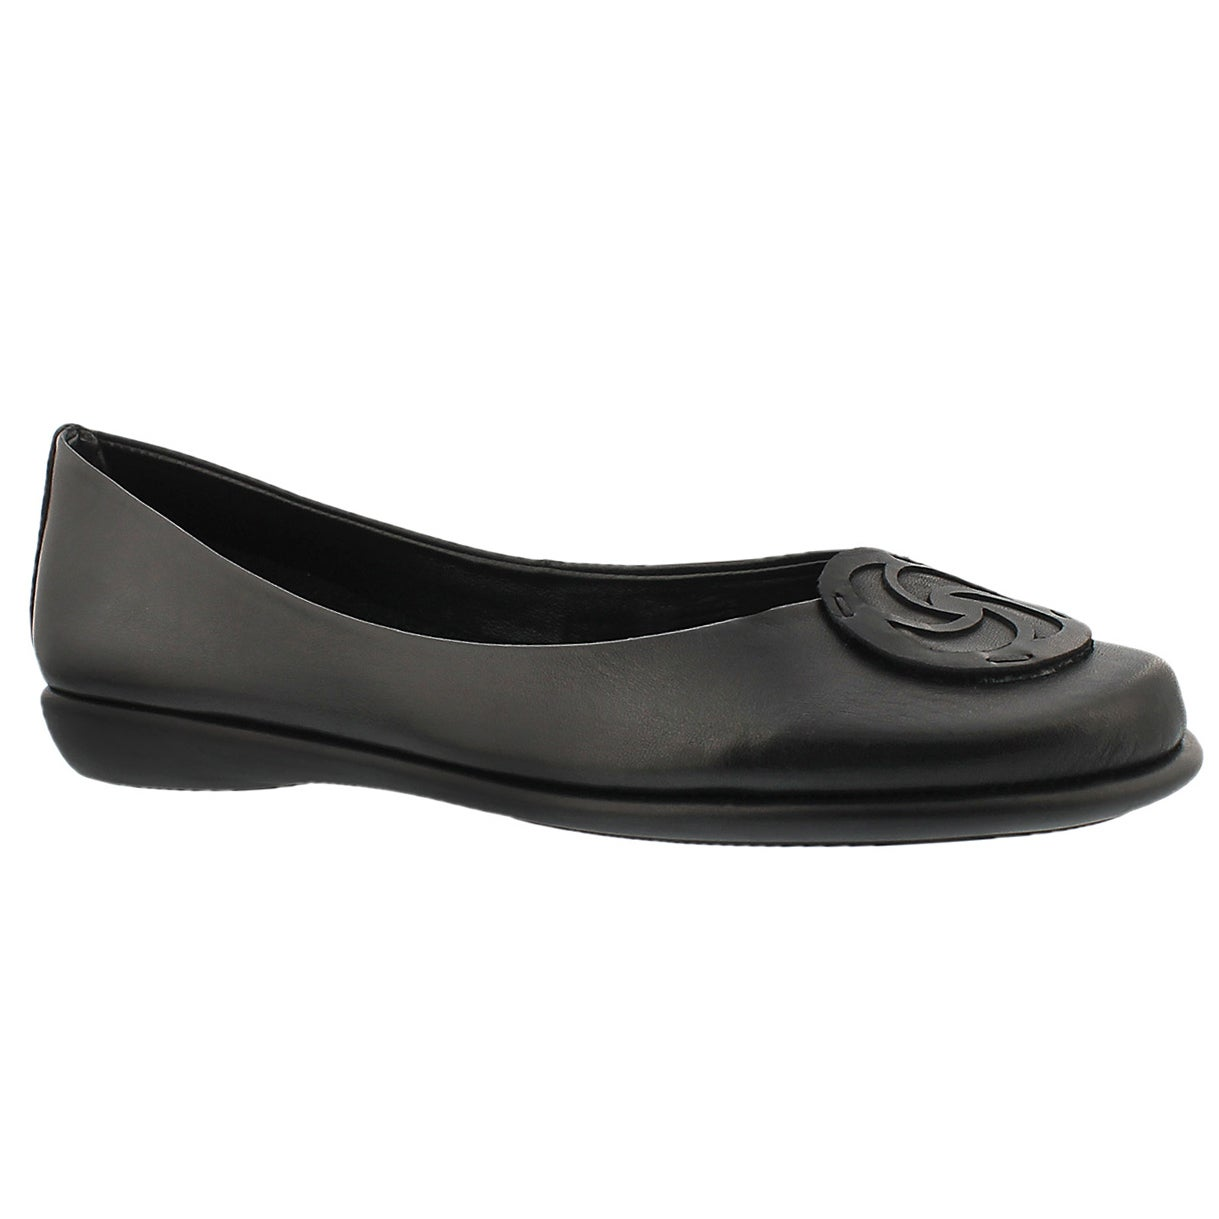 Lds Bon Bon black dress flat